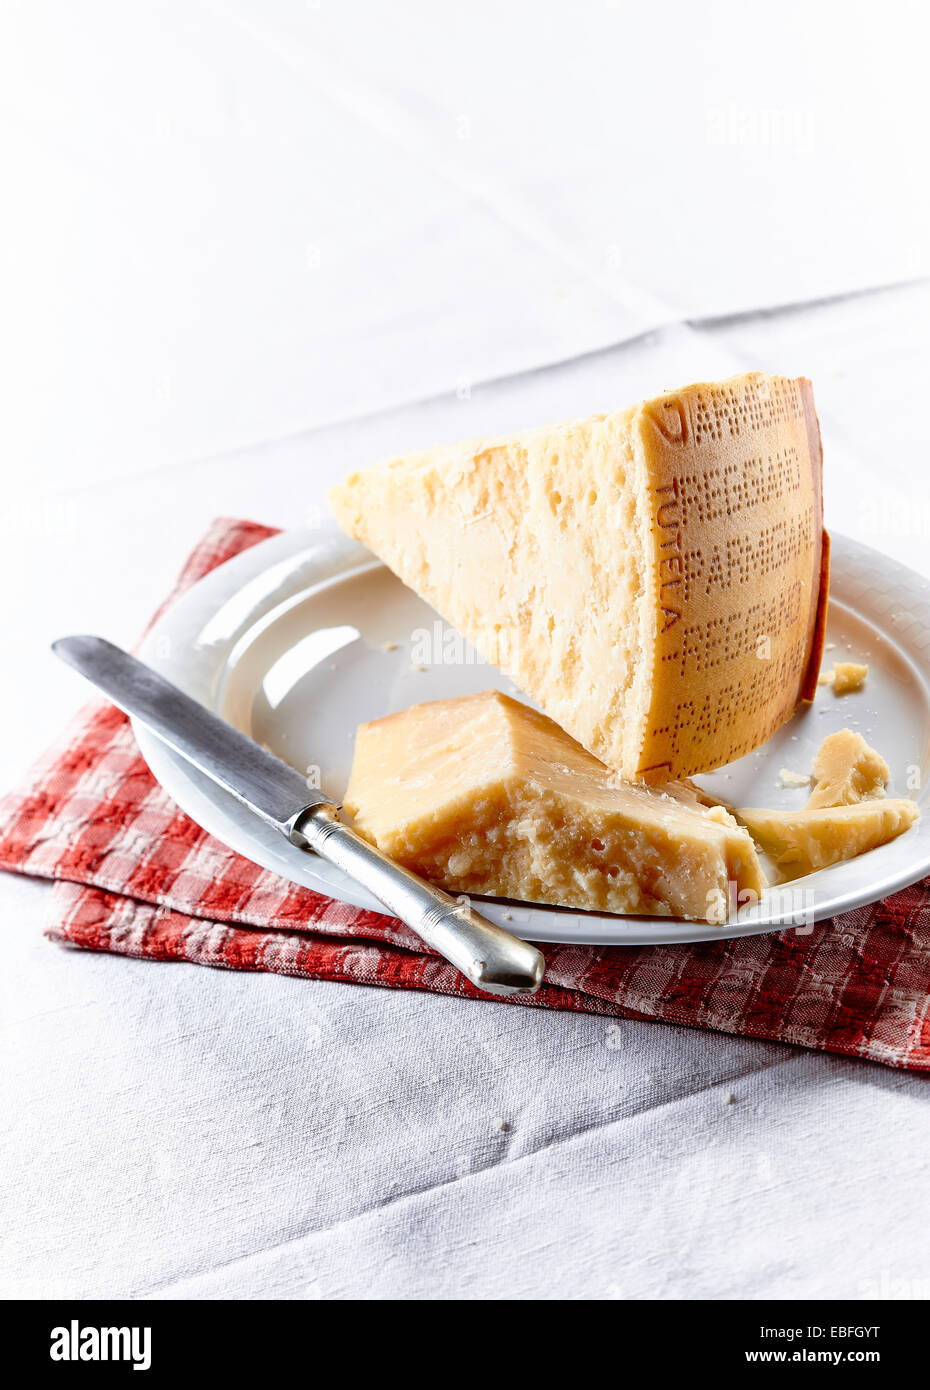 Still life of piece of parmesan cheese with knife - Stock Image